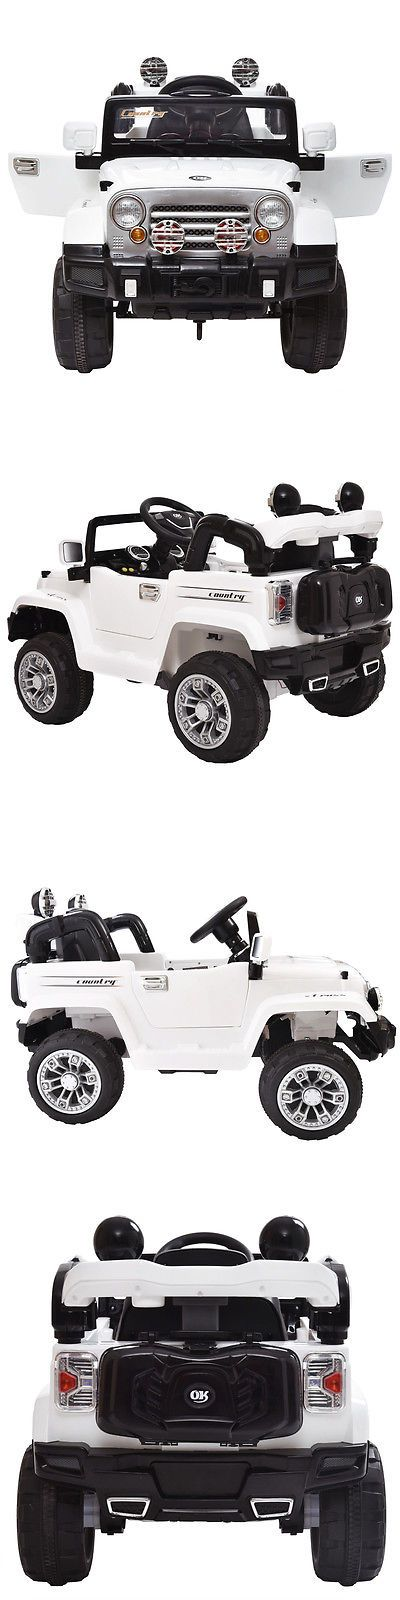 Ride On Toys and Accessories 145944: 12V Mp3 Battery Power Wheels Jeep Car Truck Remote Kids Ride W Led Lights White -> BUY IT NOW ONLY: $165.99 on eBay!